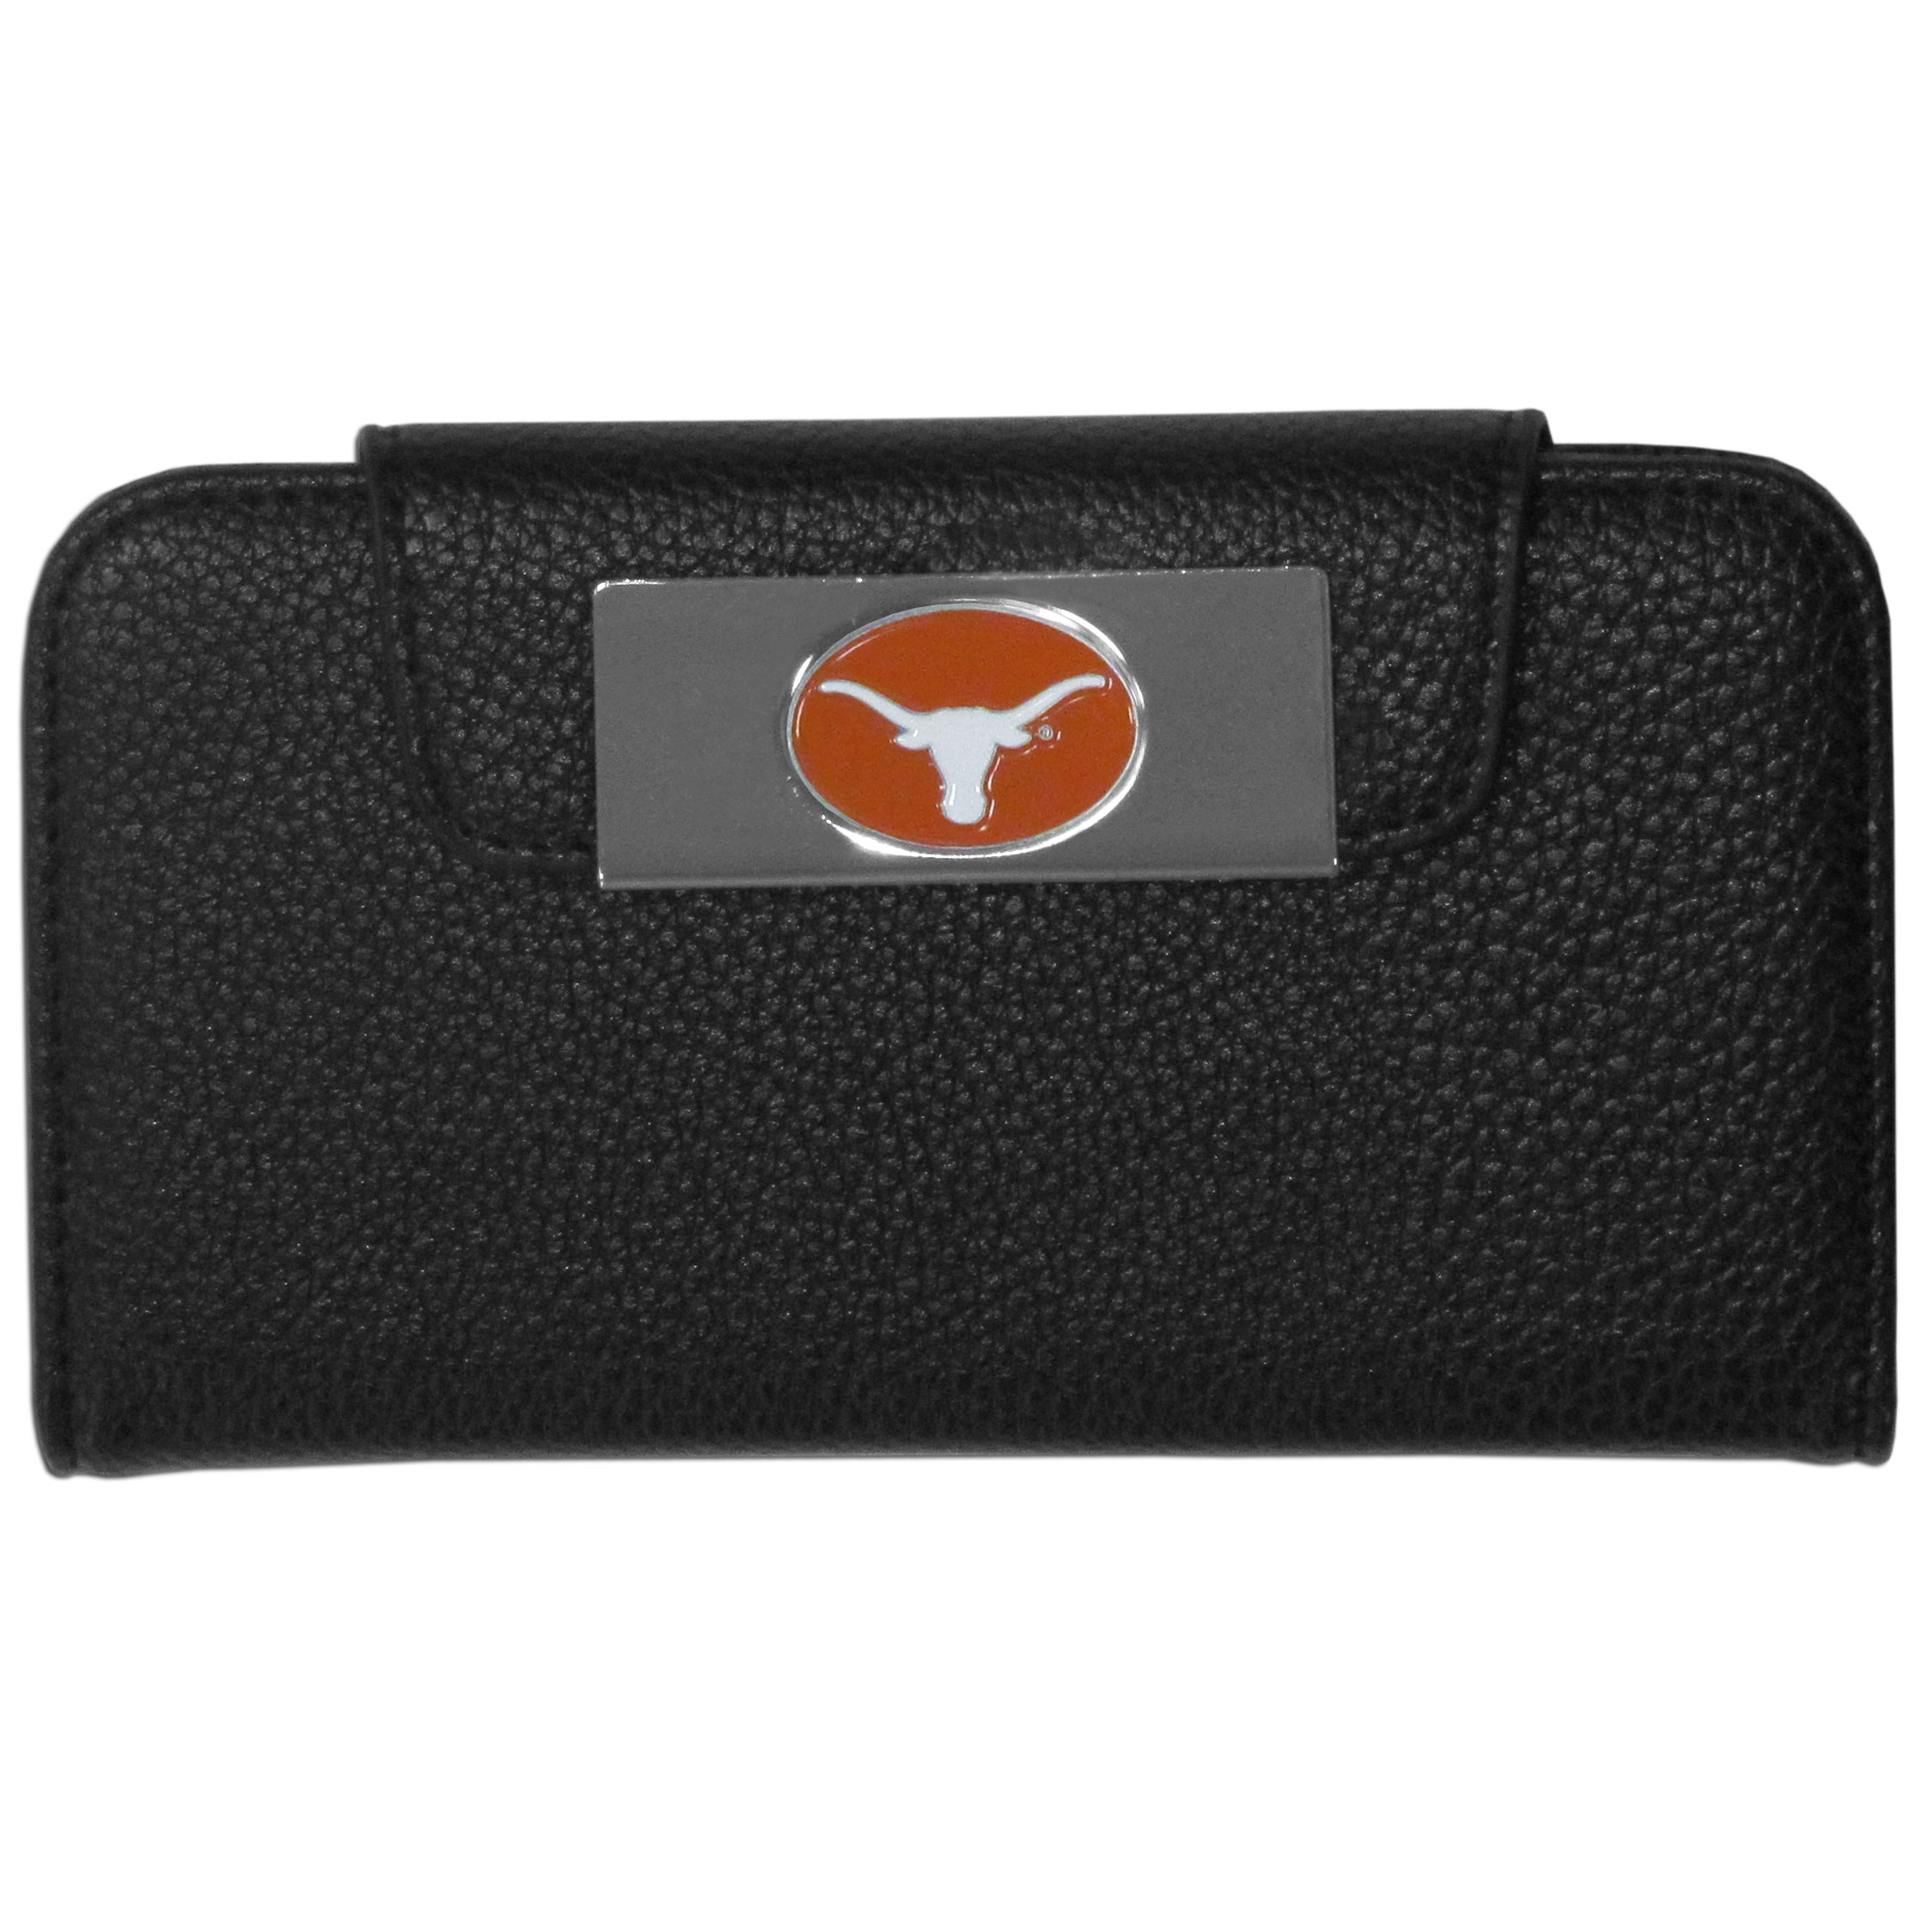 Texas Longhorns iPhone 5/5S Wallet Case - This new & wildly popular case is ideal for those who like to travel light! The stylish case has an inner hard shell that securely holds your phone while allowing complete access to the phone's functionality. The flip cover has slots for credit cards, business cards and identification. The magnetic flip cover has a metal Texas Longhorns emblem on a high polish chrome backing. Fits the iPhone 5/5S